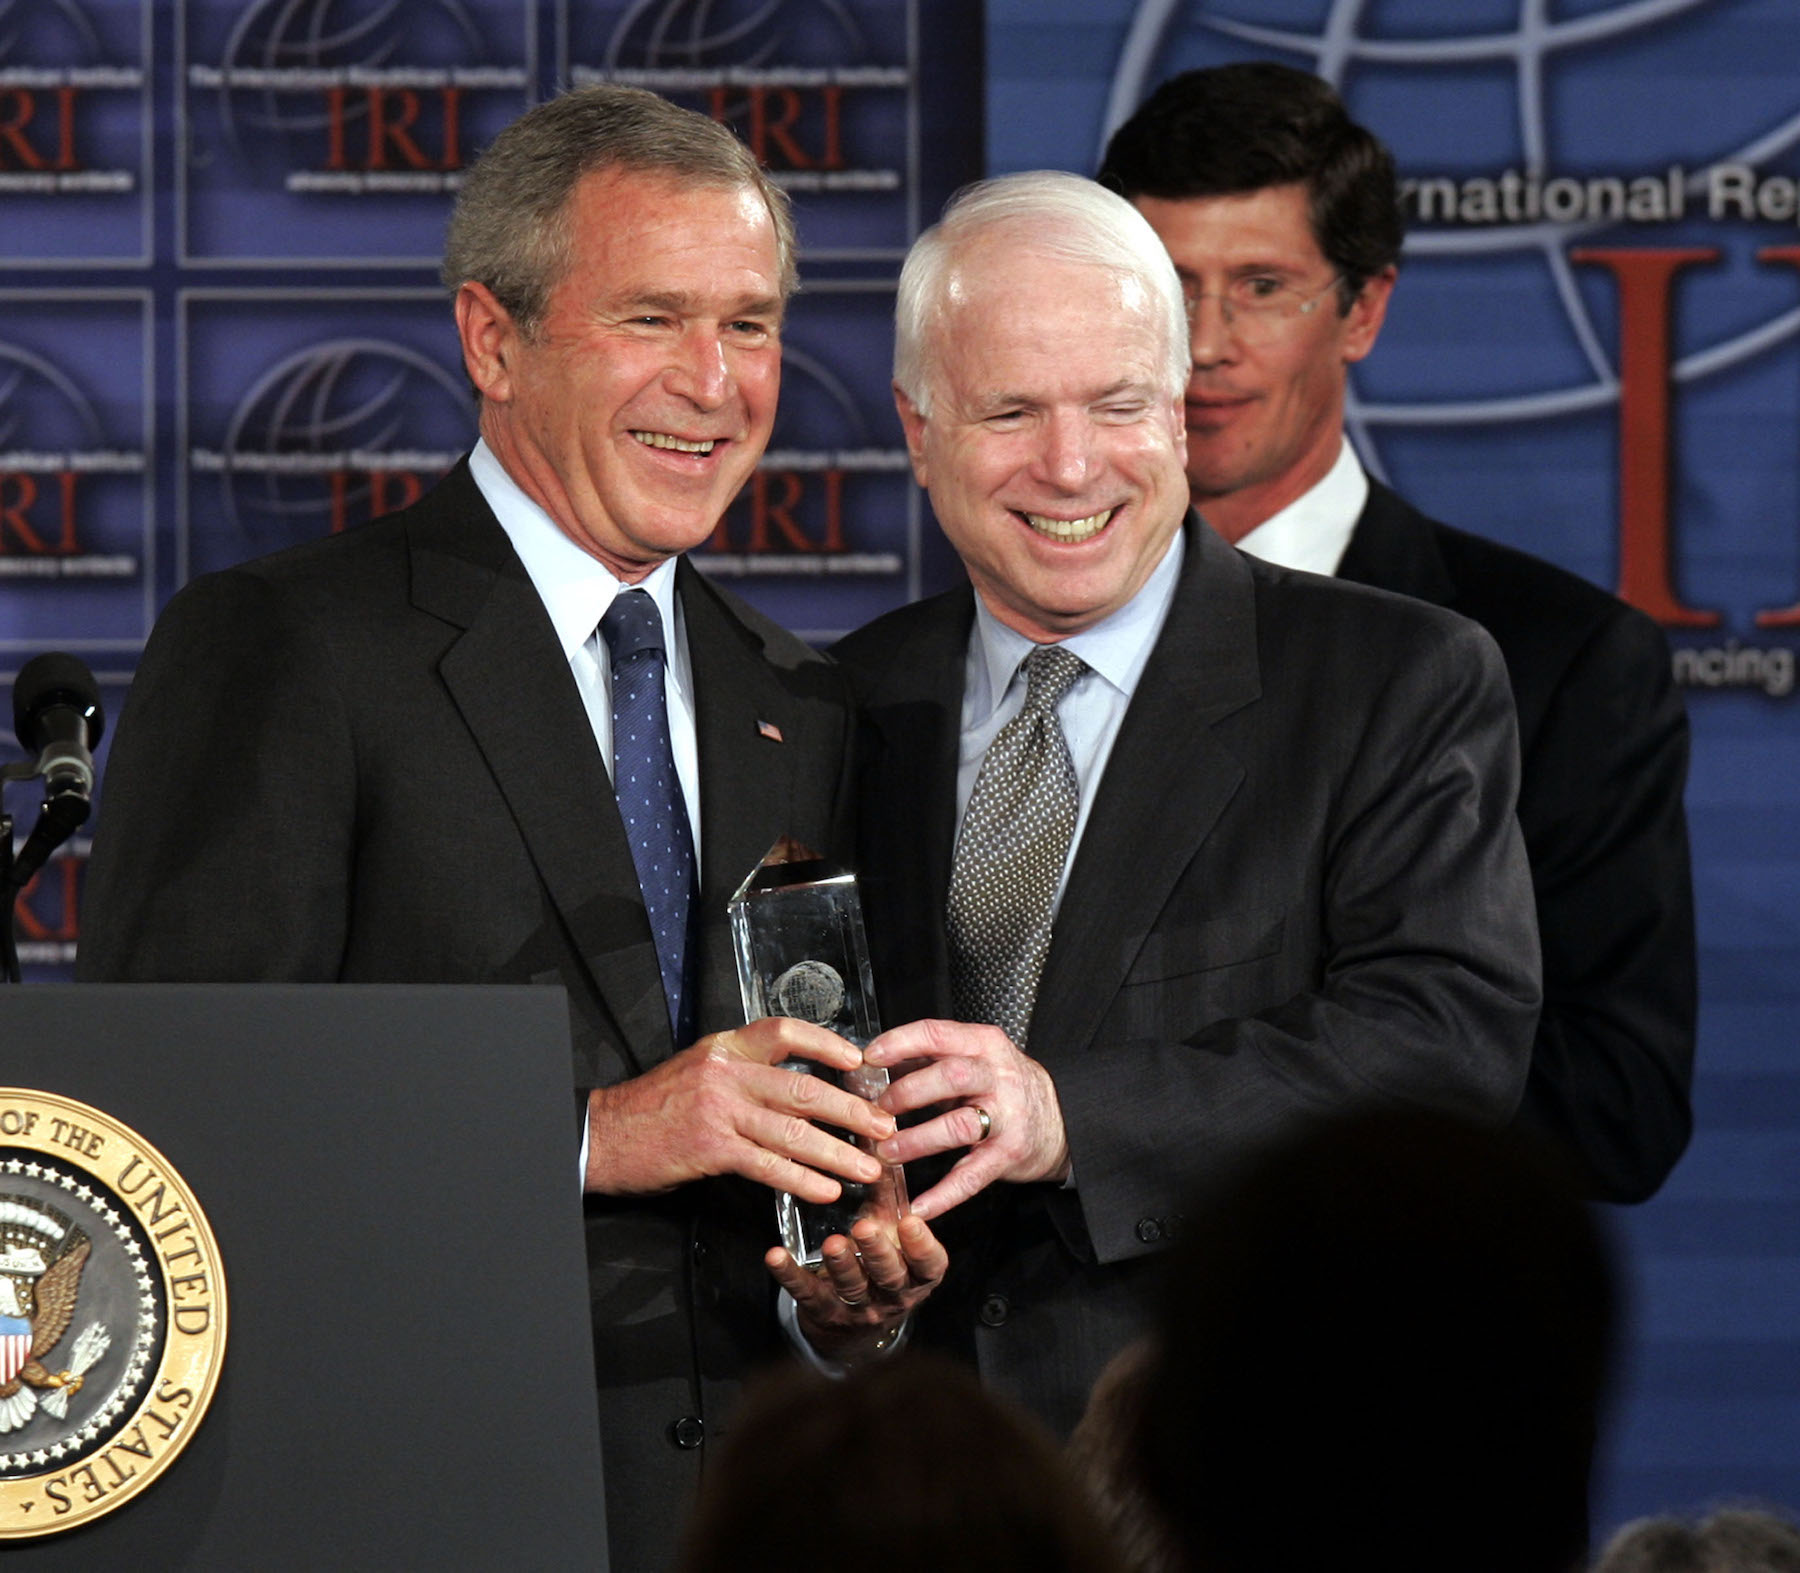 <div class='meta'><div class='origin-logo' data-origin='AP'></div><span class='caption-text' data-credit='AP Photo/Charles Dharapak'>President Bush is presented with the International Republican Institute's Freedom Award by Sen. John McCain at the IRI Freedom Dinner in Washington in 2005.</span></div>